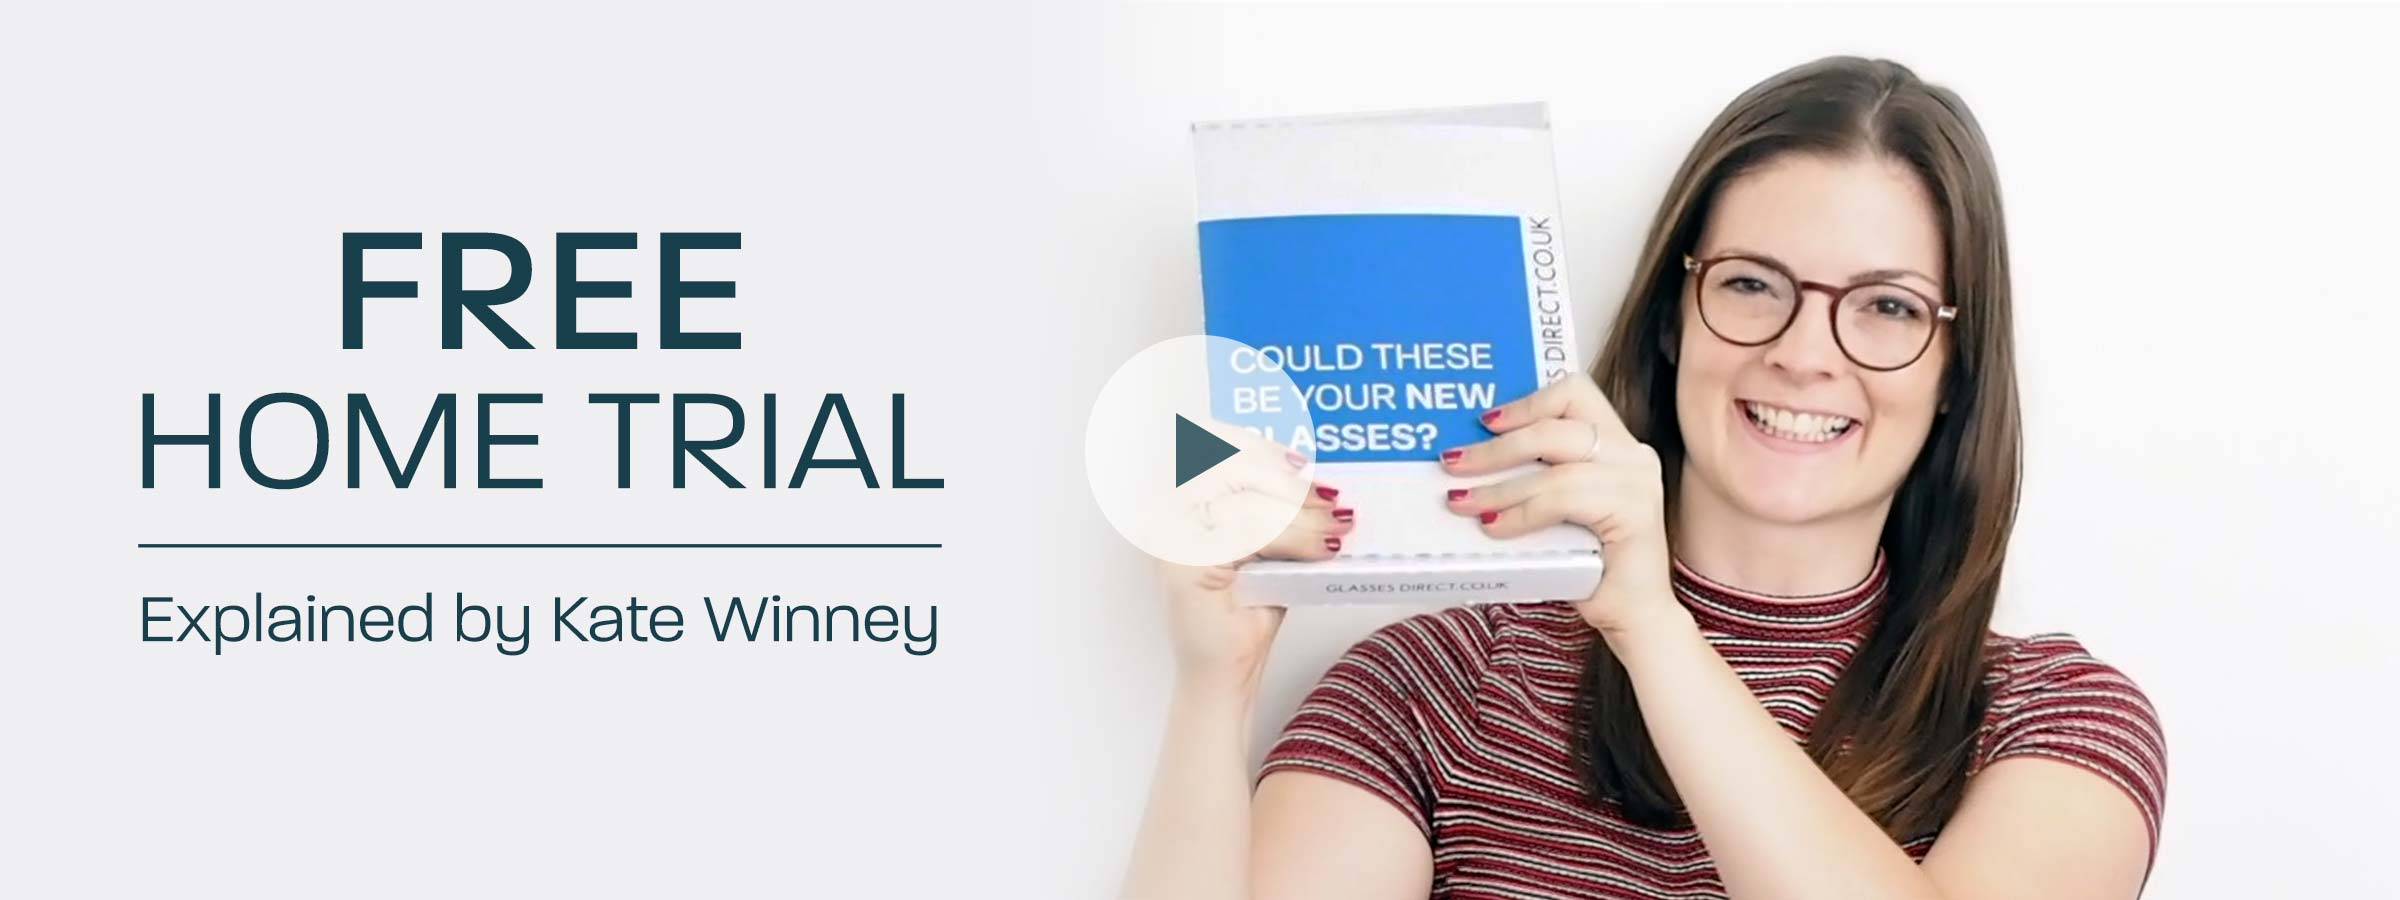 Free Home Trial explained by Kate Winney